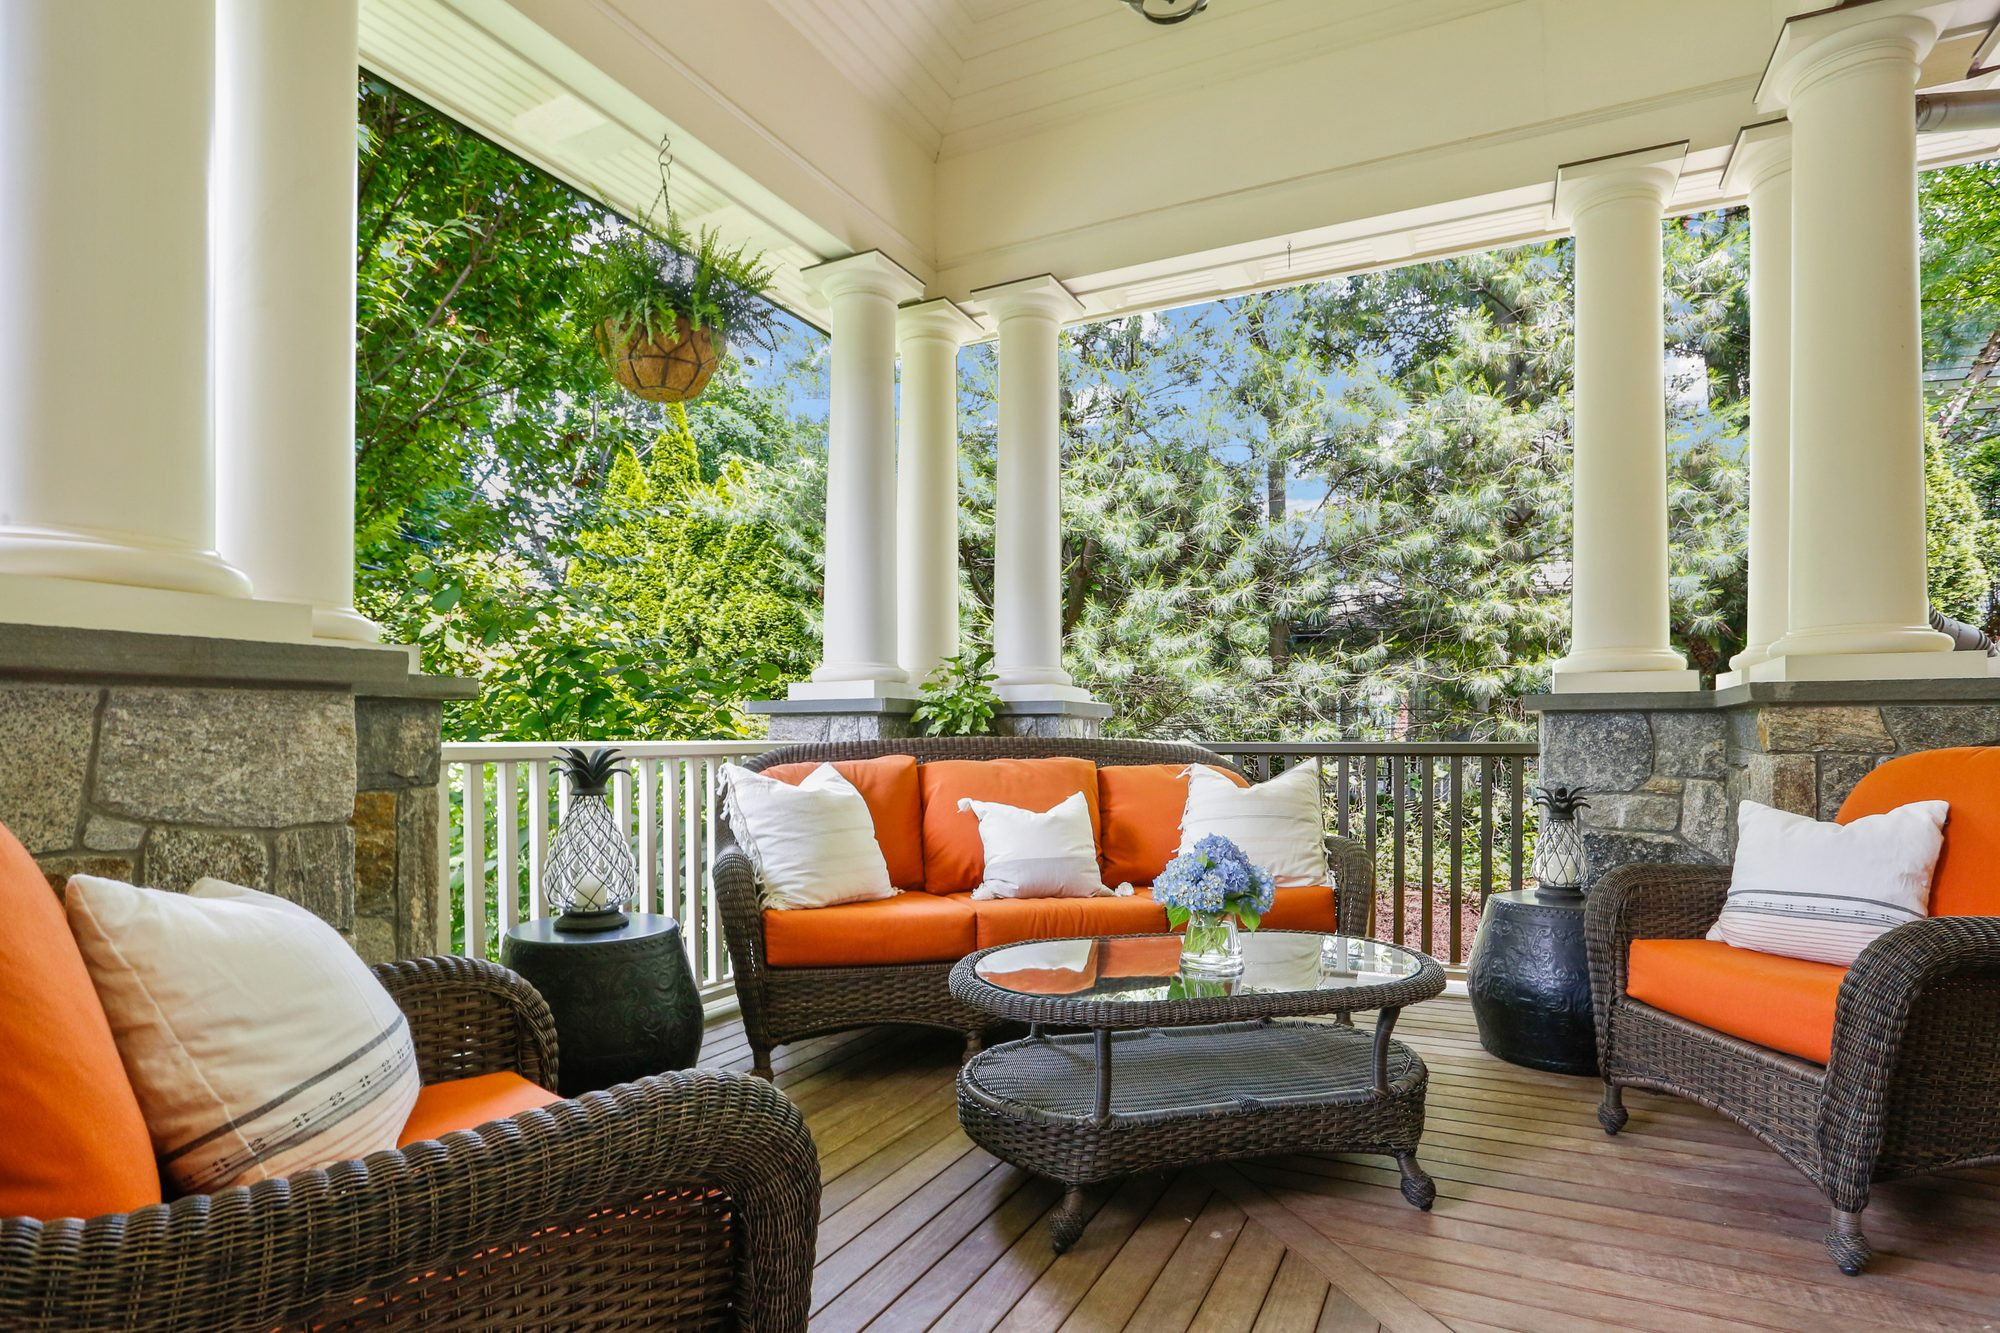 Outdoor wicker furniture with orange cushions decorated with white indoor pillows.